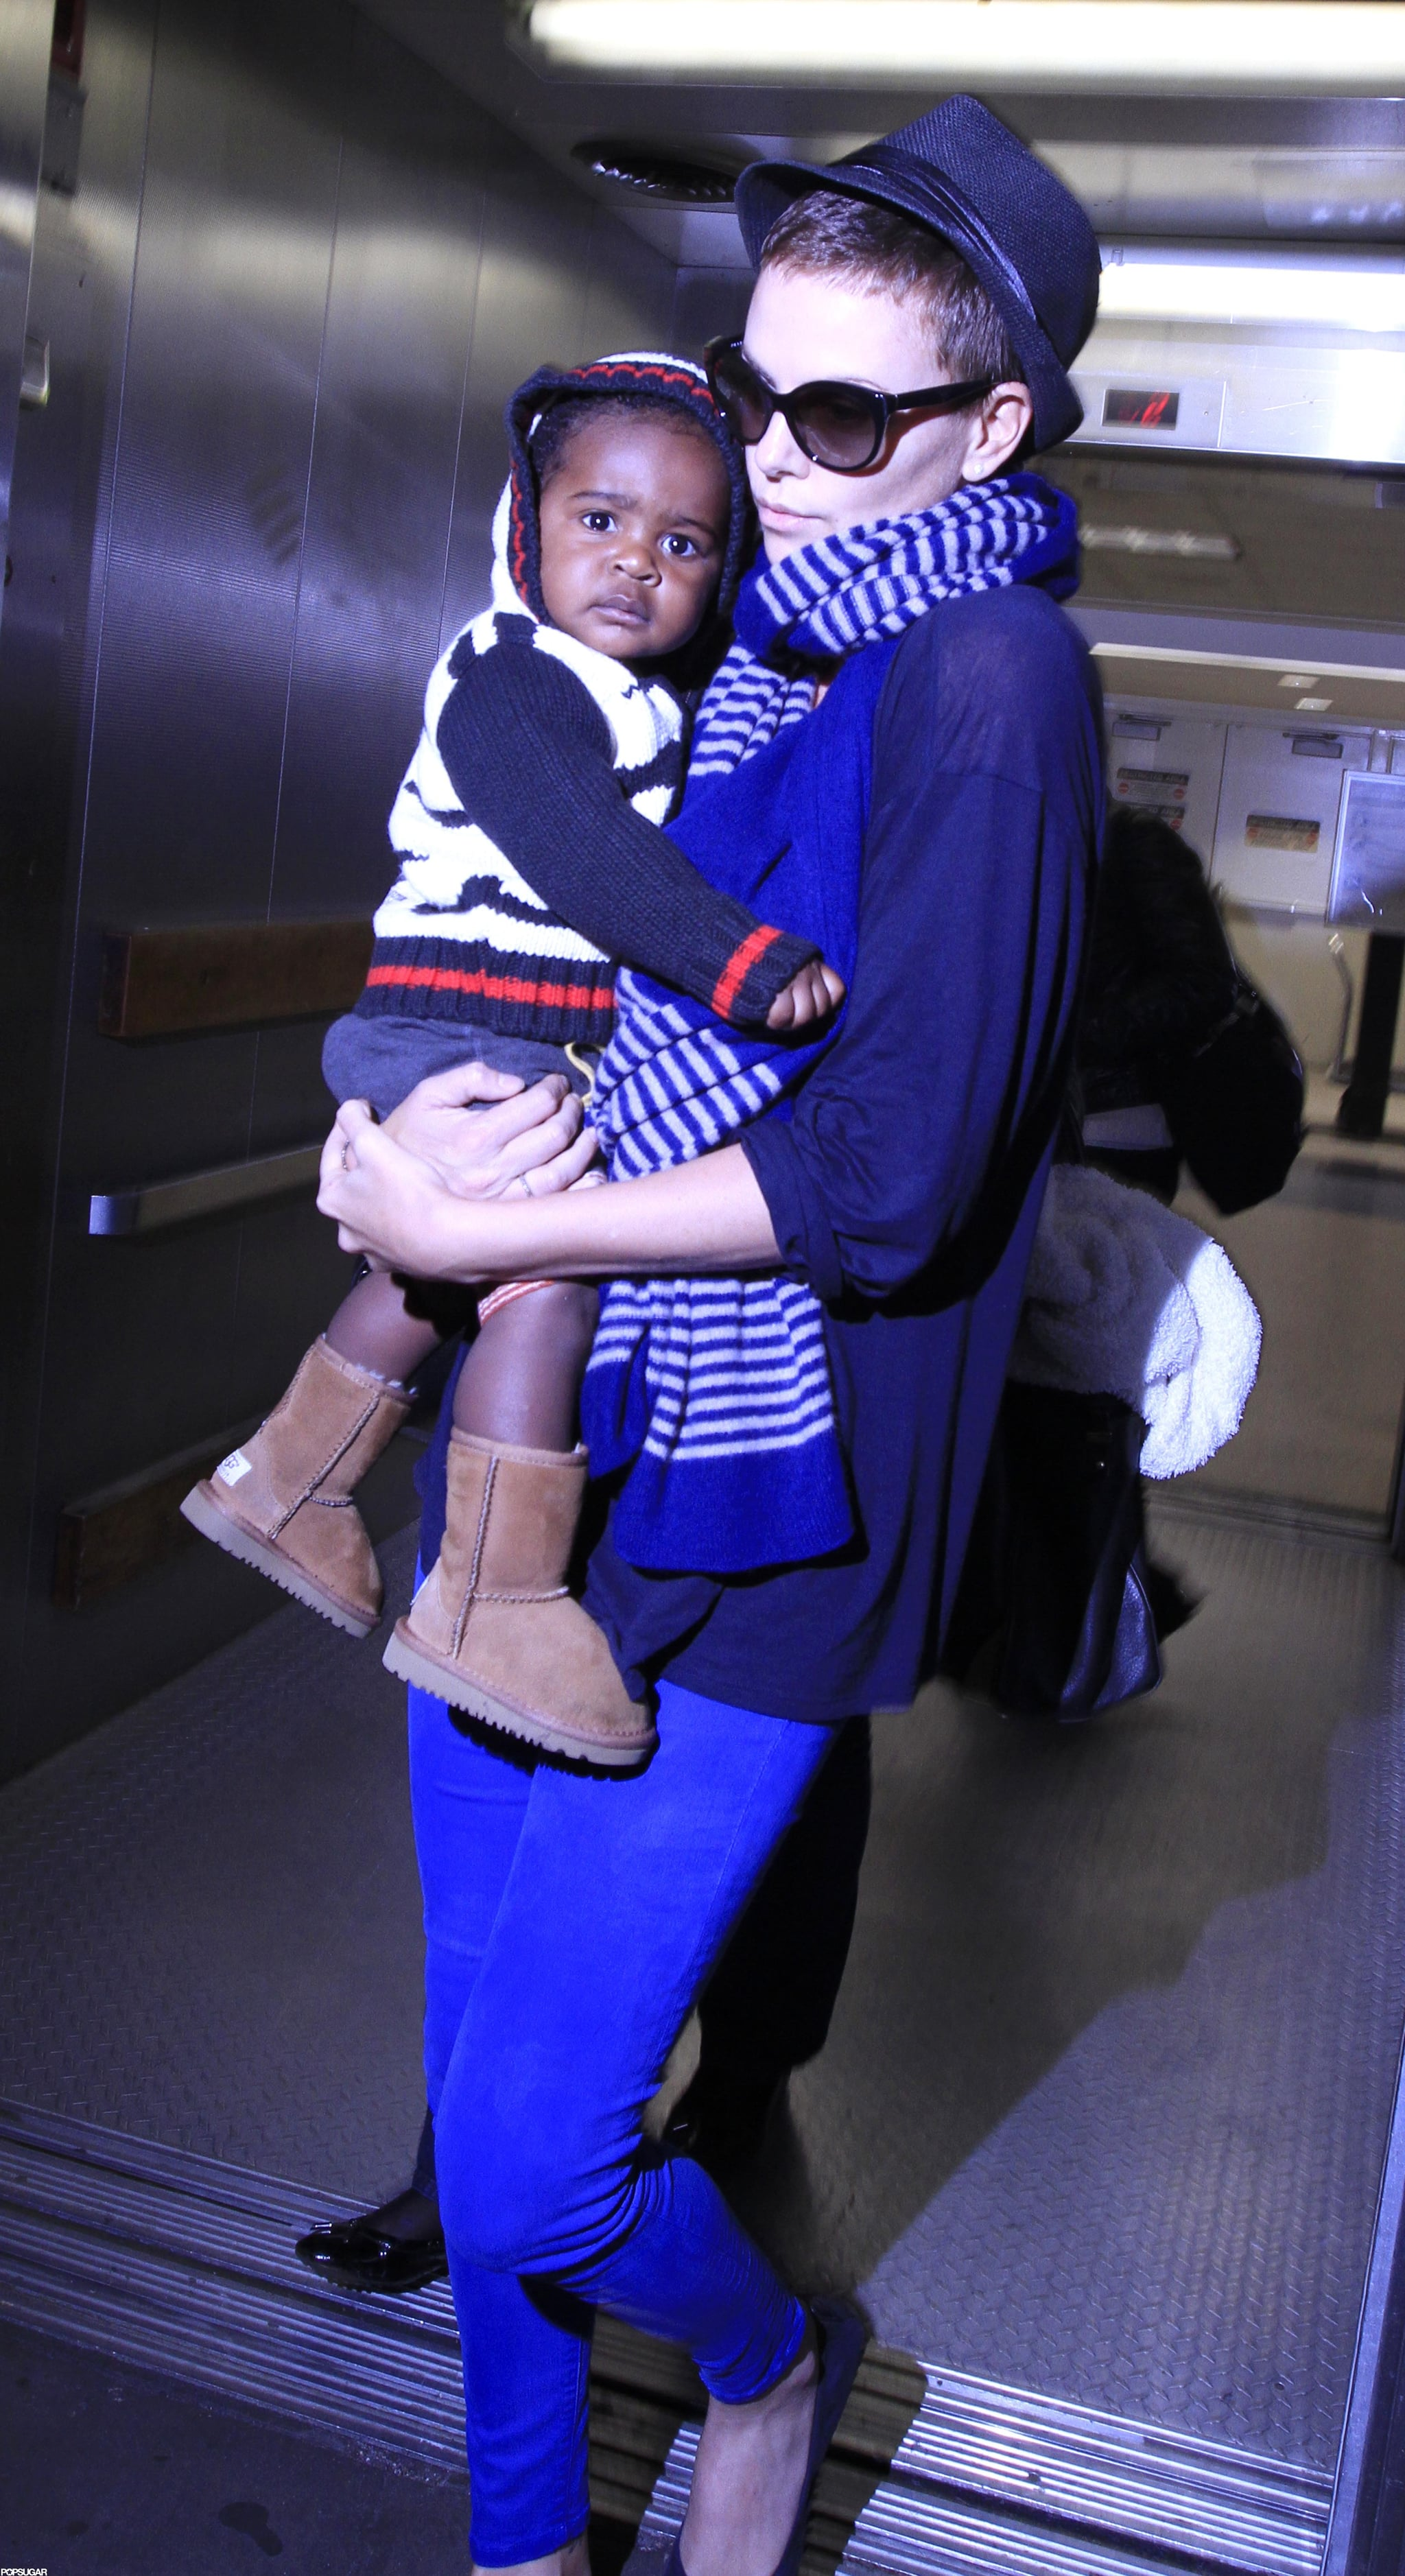 Charlize Theron and Jackson Theron arrived in LA after a vacation.